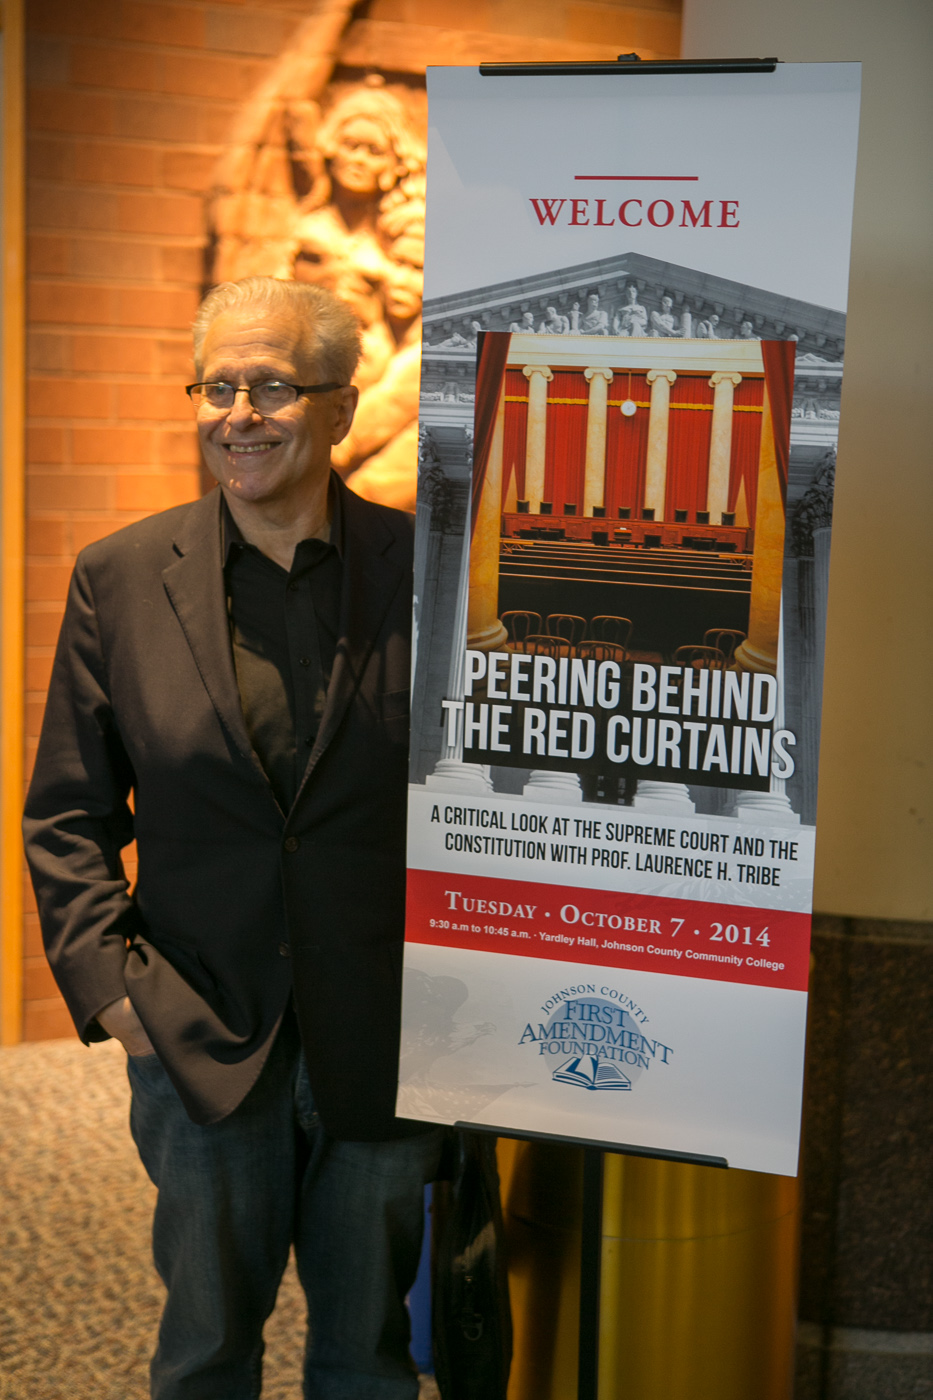 an analysis of the american constitution by laurence tribe Of impeachments, one constitutional convention delegate declared, a good   laurence tribe and joshua matz have given us a thorough, lively history of   strong legal and political analysis, fair-minded and thoughtful without being bland.